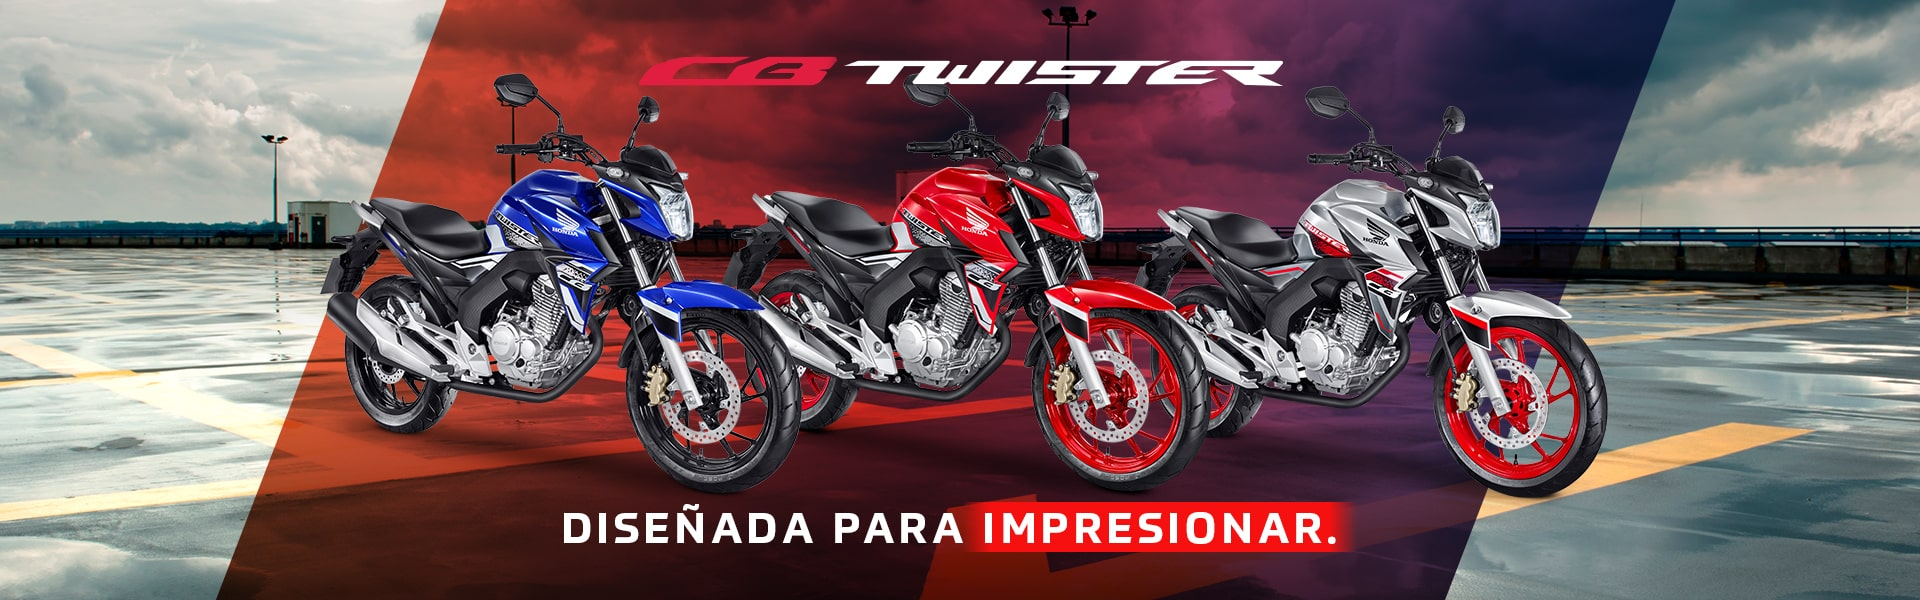 slider-CB250twister (1)-min